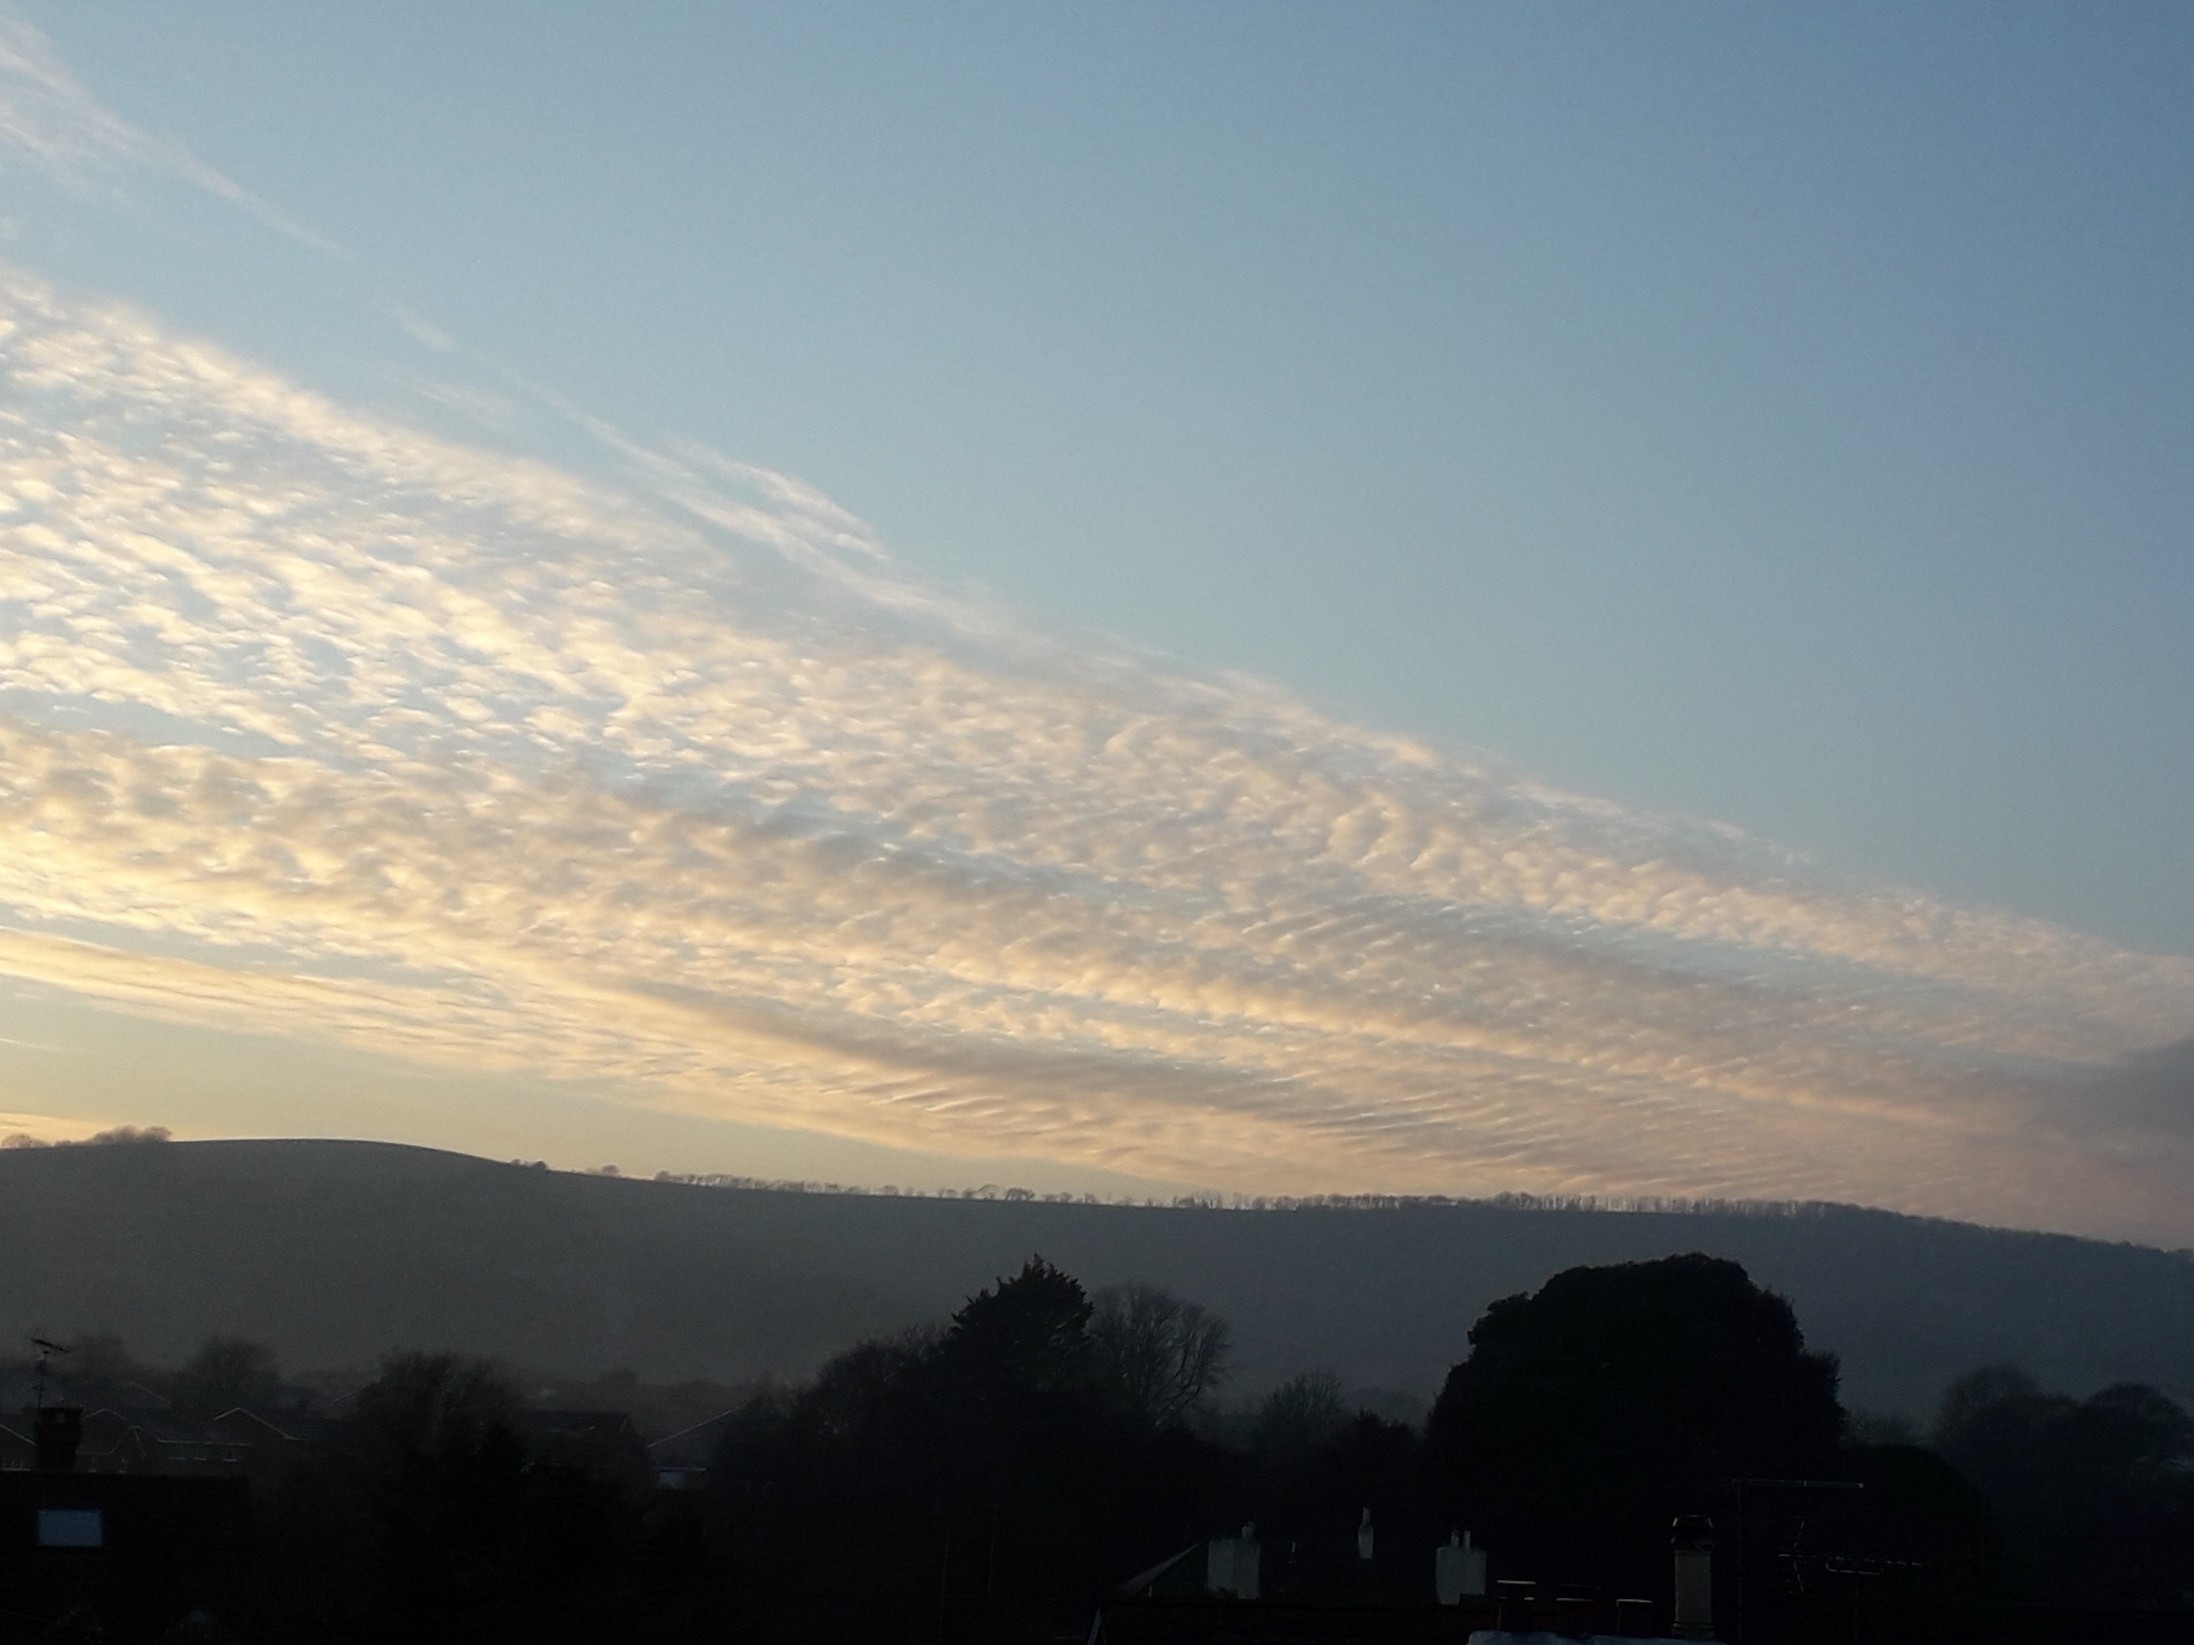 The bigger picture - winter sunset. Taken from my home, 8 January - looking towards the Downs.